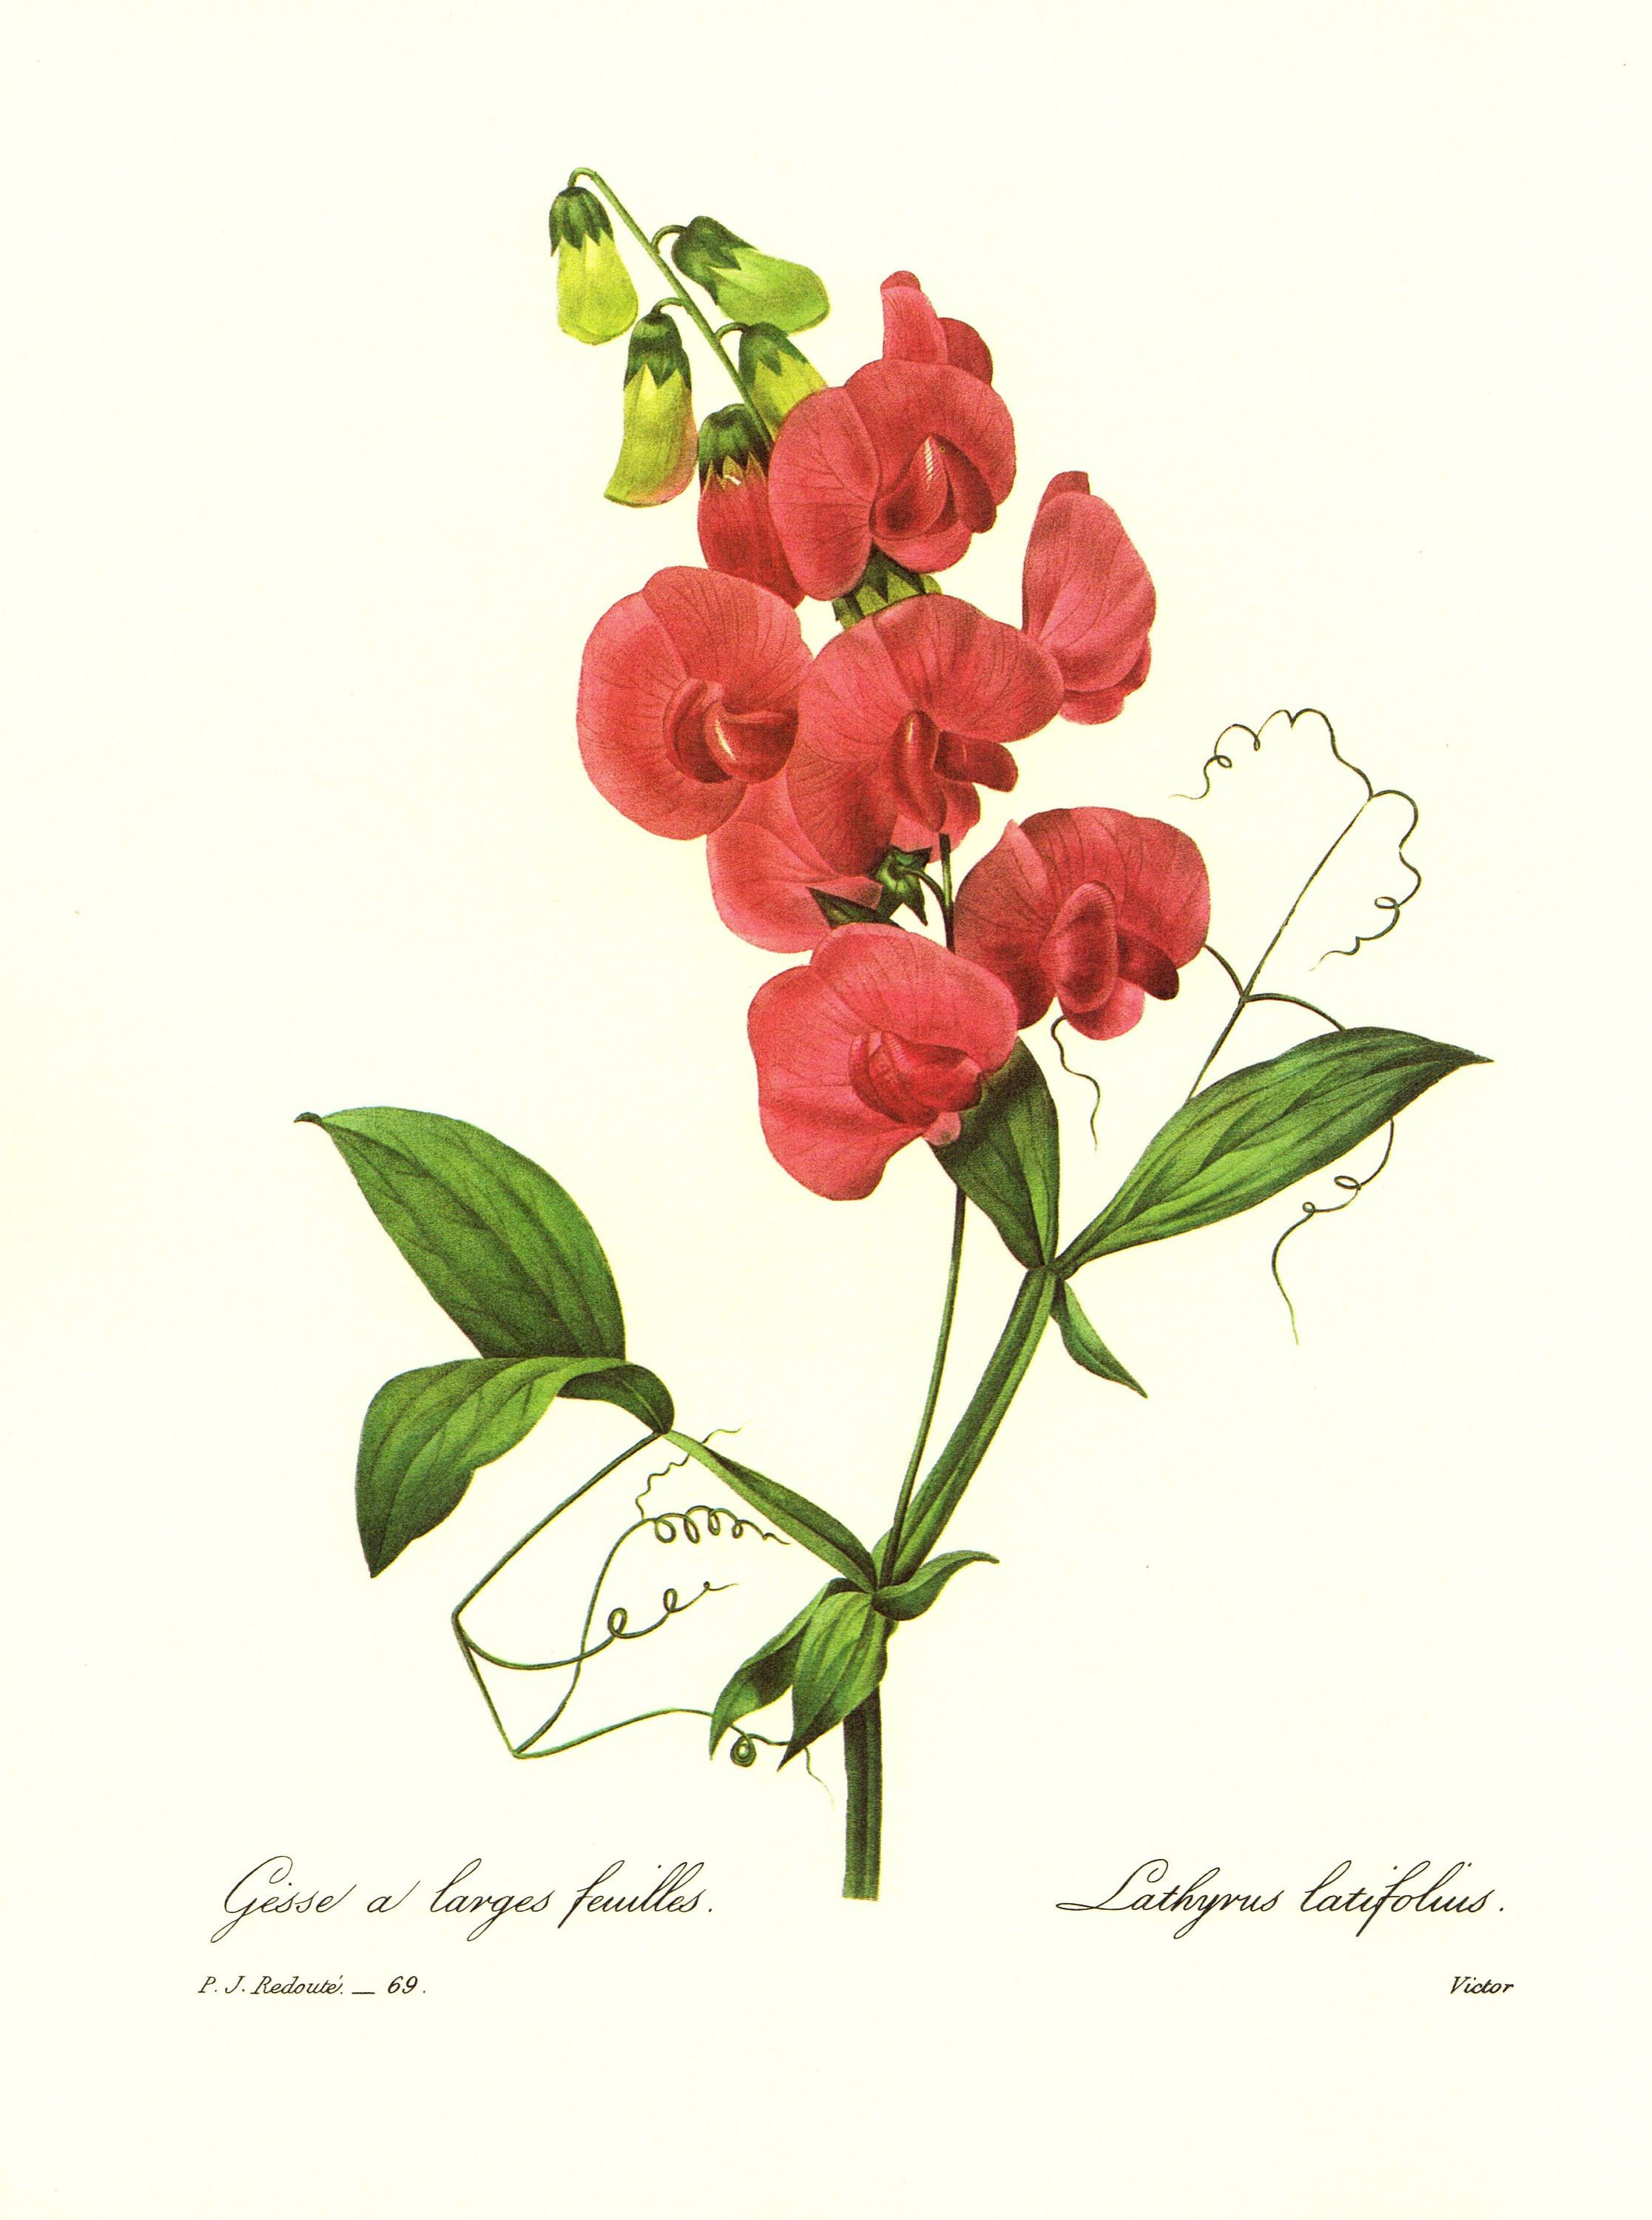 Lovely Vintage Sweet Pea Print Redoute Botanical Pink Flower Art Gift For Birthday Housewarming Wedding Pjr 3928 By Plaindealing On Etsy